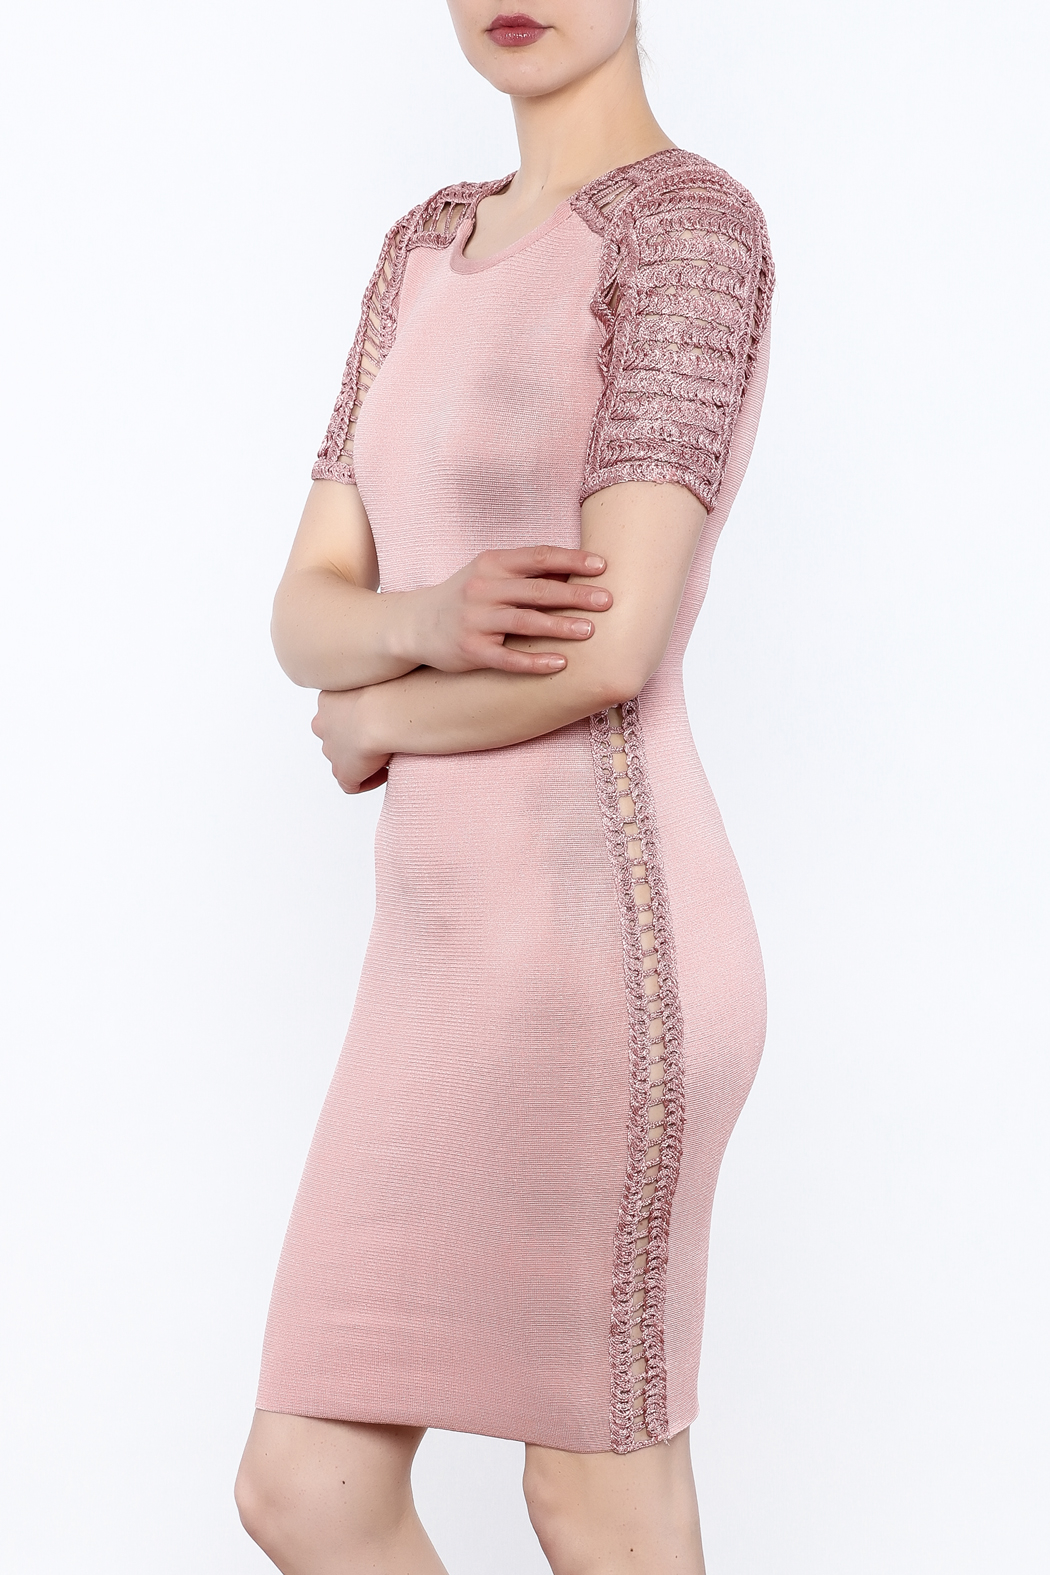 Heiress Boutique Pink Bandage Dress - Main Image